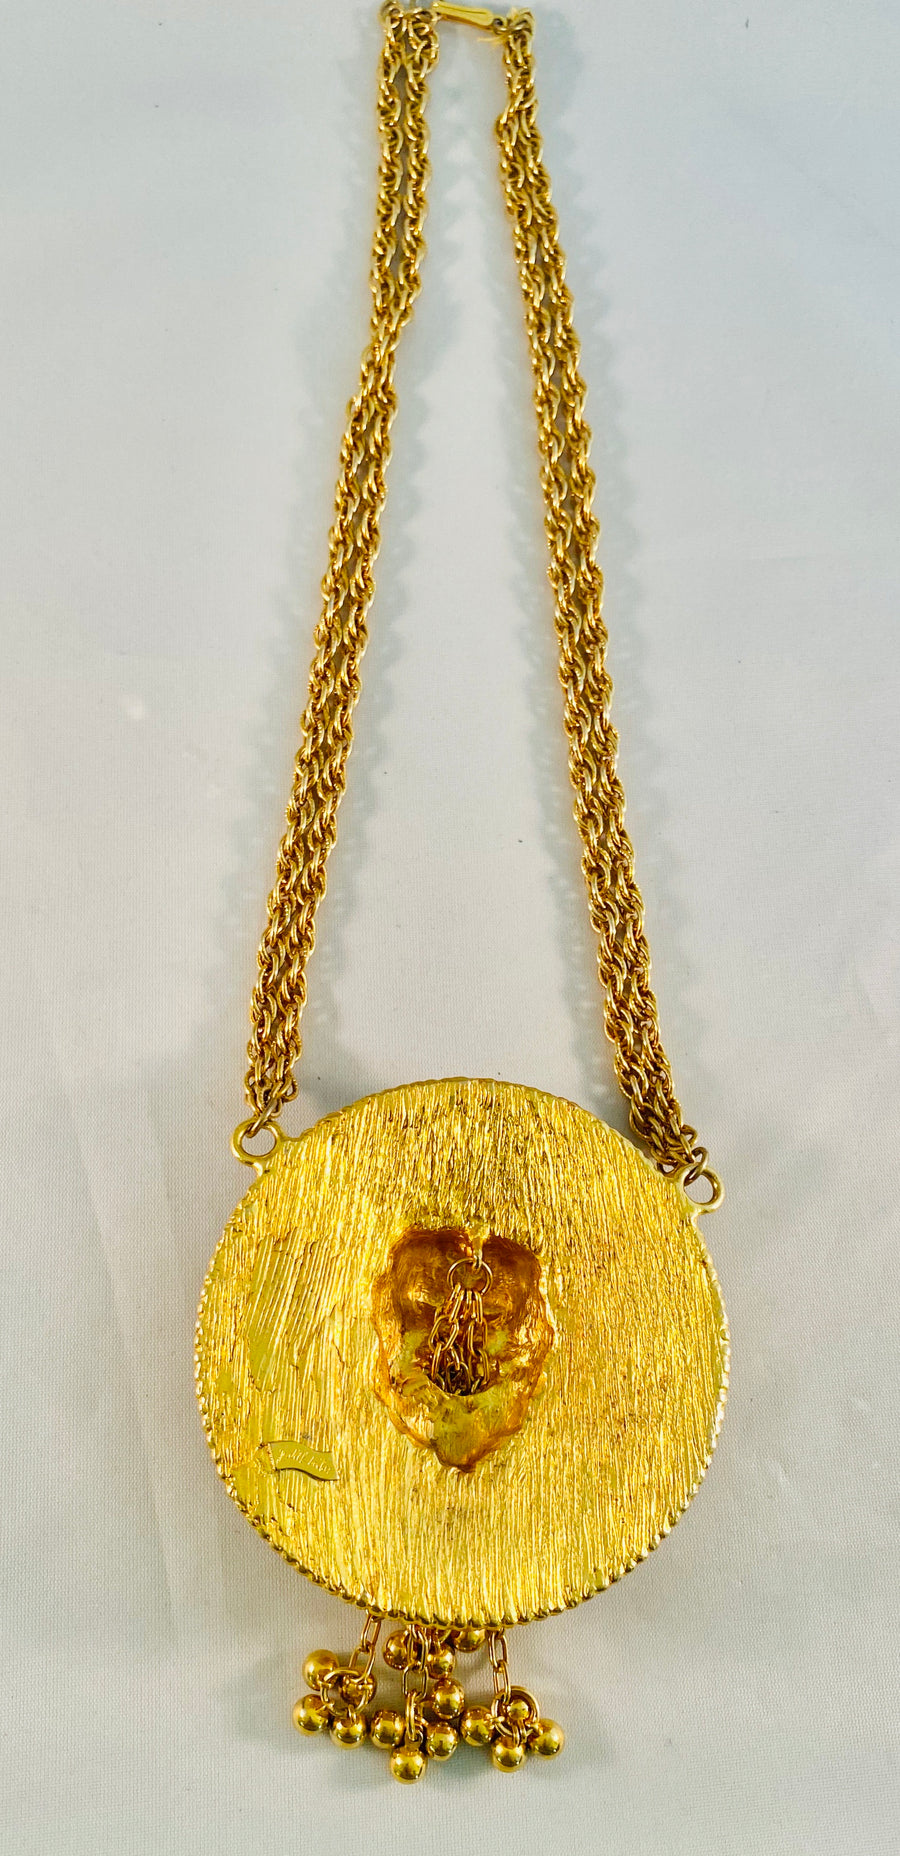 Judith Leiber Necklace